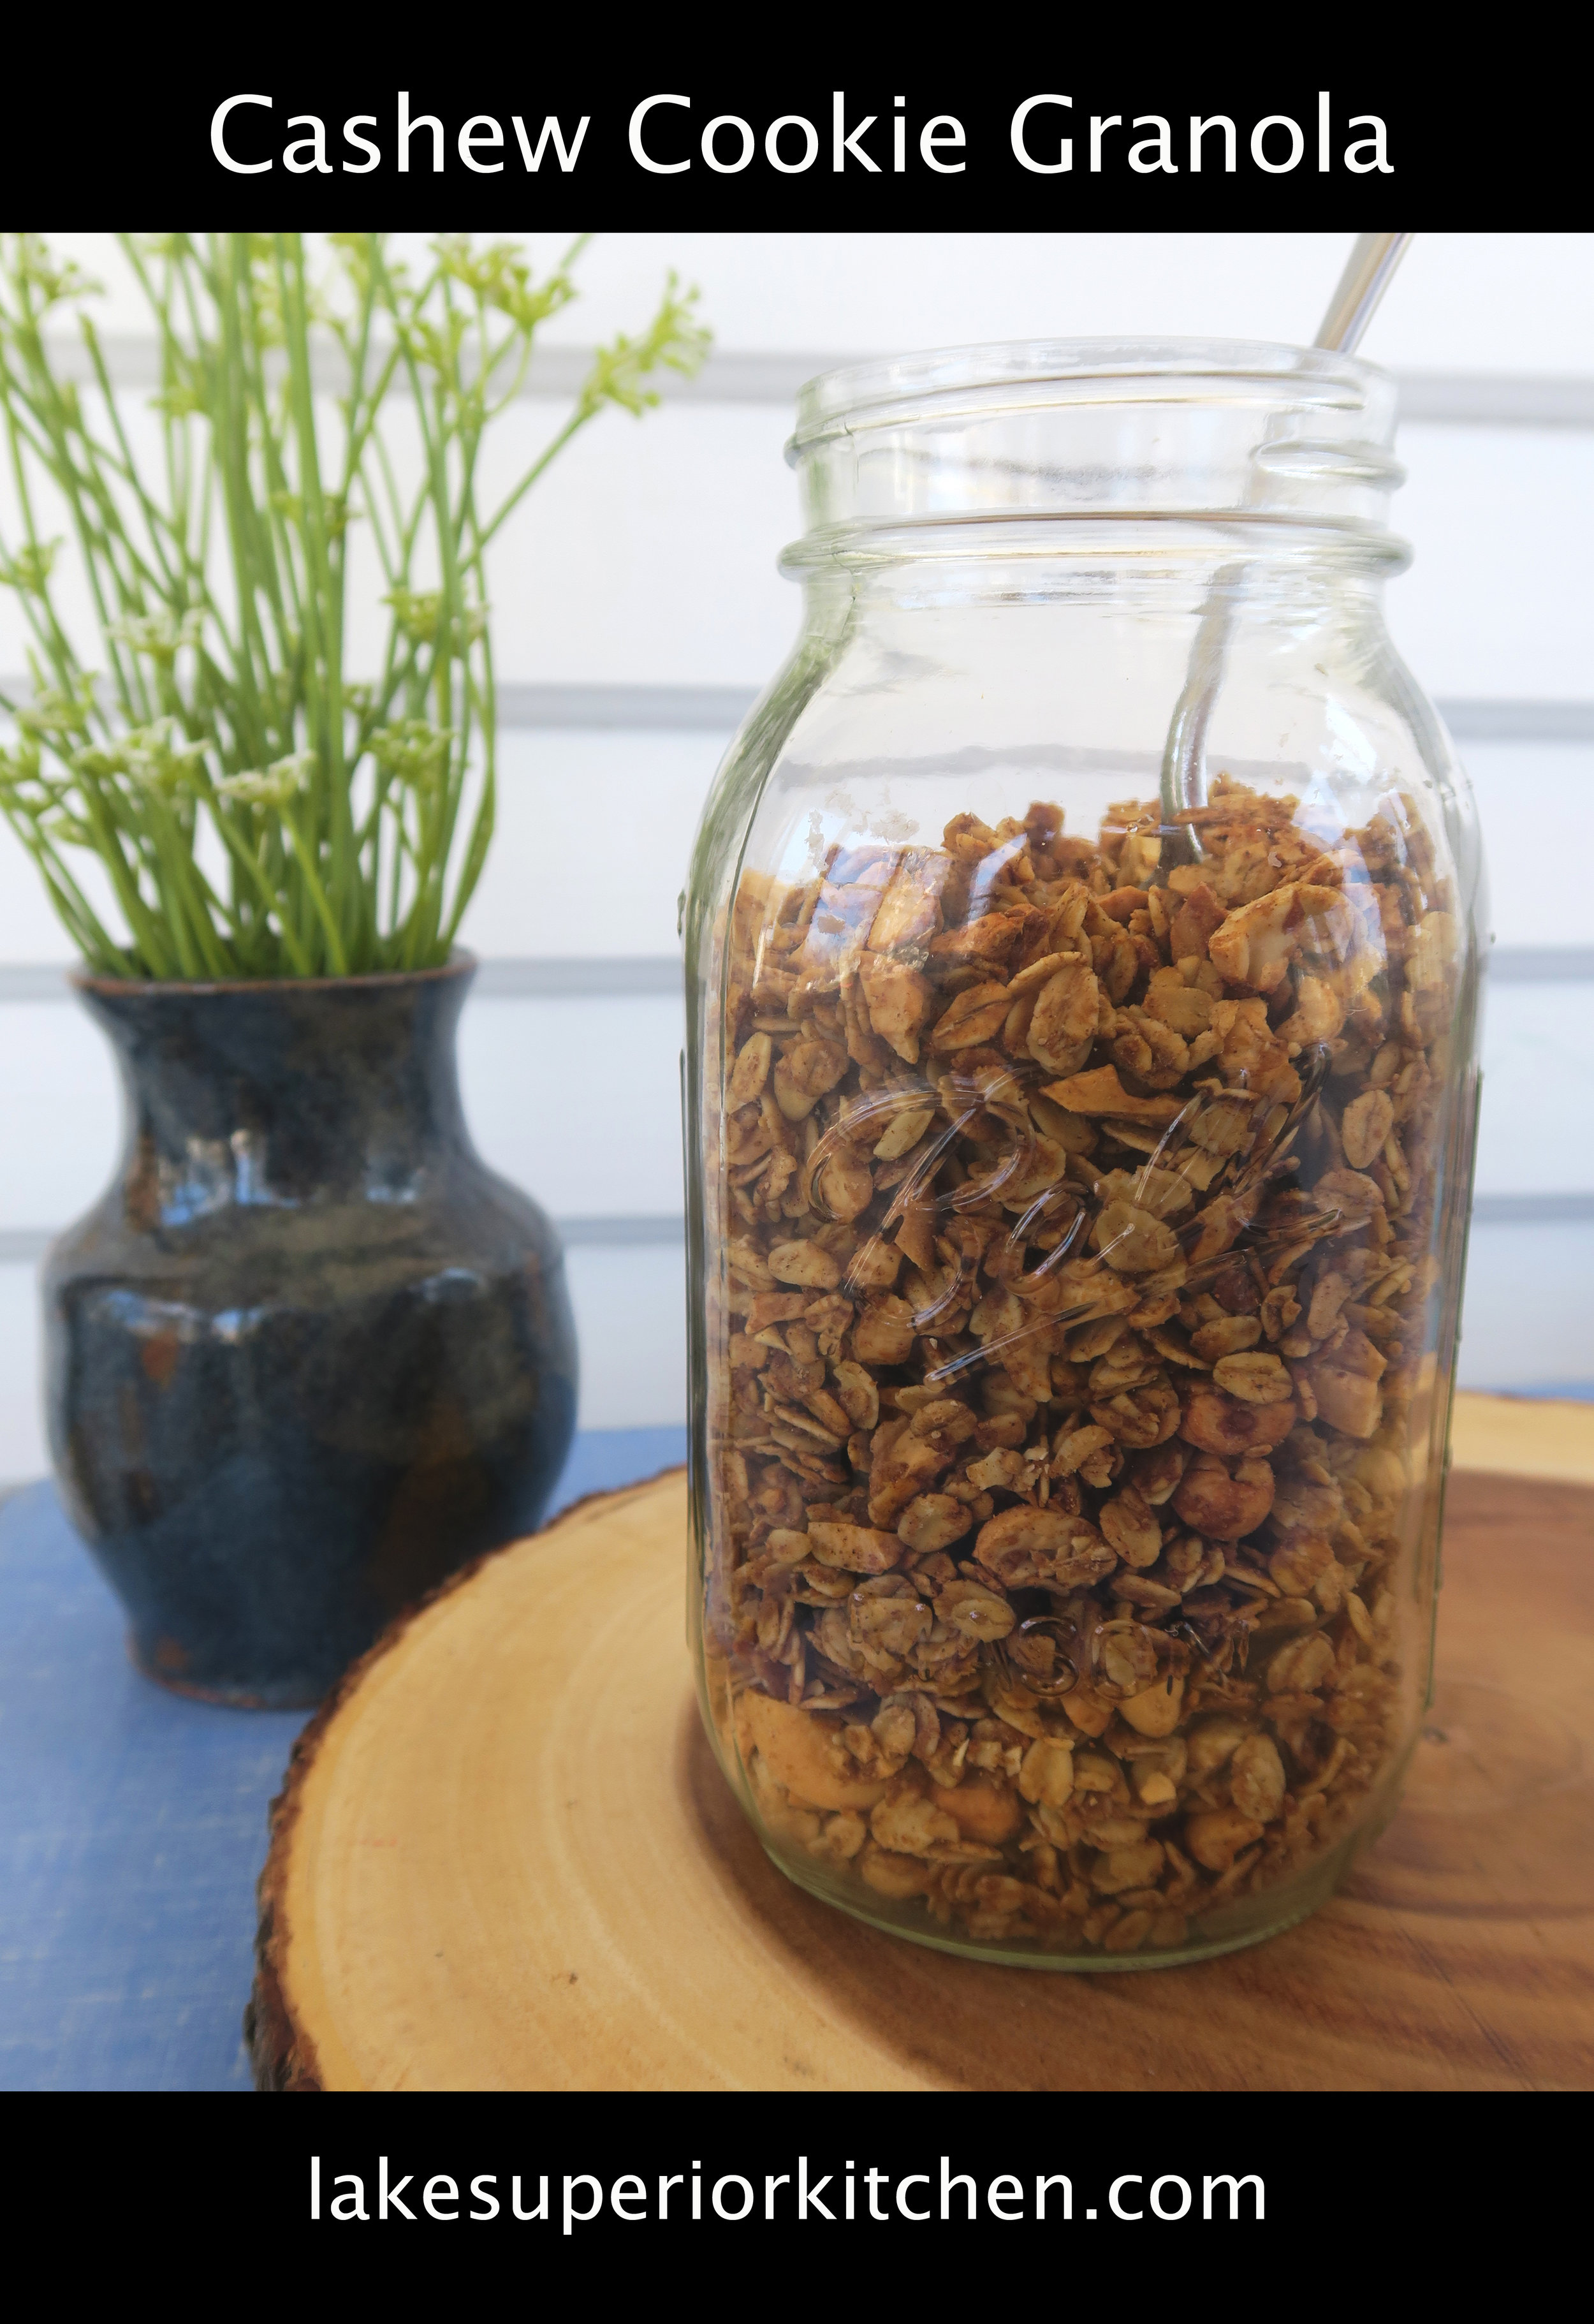 lake superior kitchen, duluth food, granola recipe, healthy granola, cashew, cookie butter